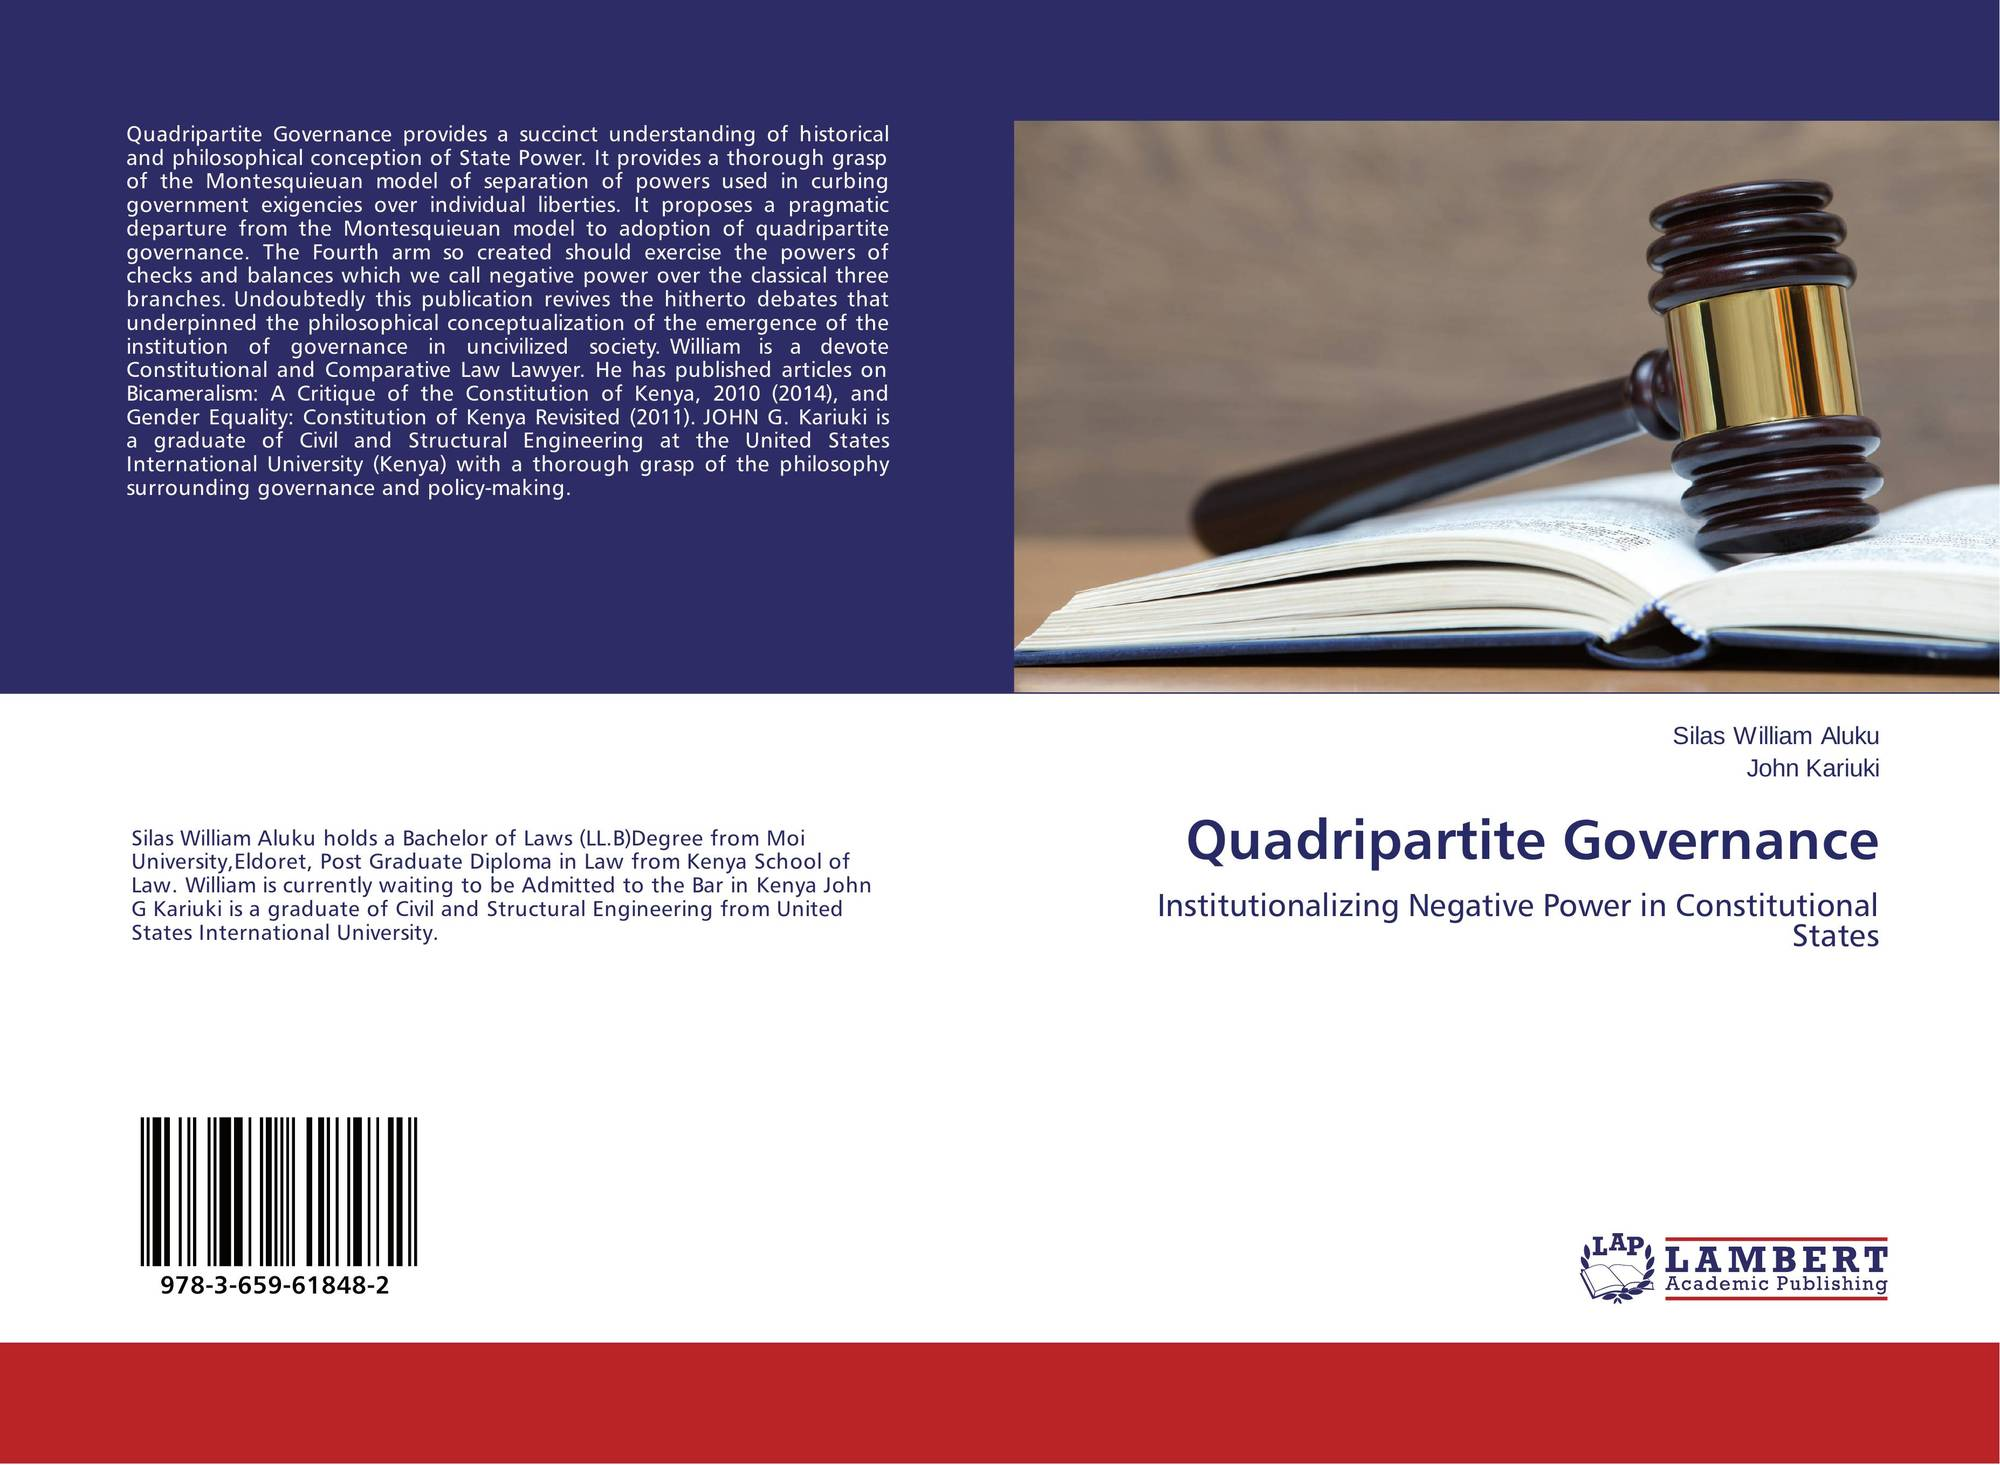 Quadripartite Governance, 978-3-659-61848-2, 3659618489